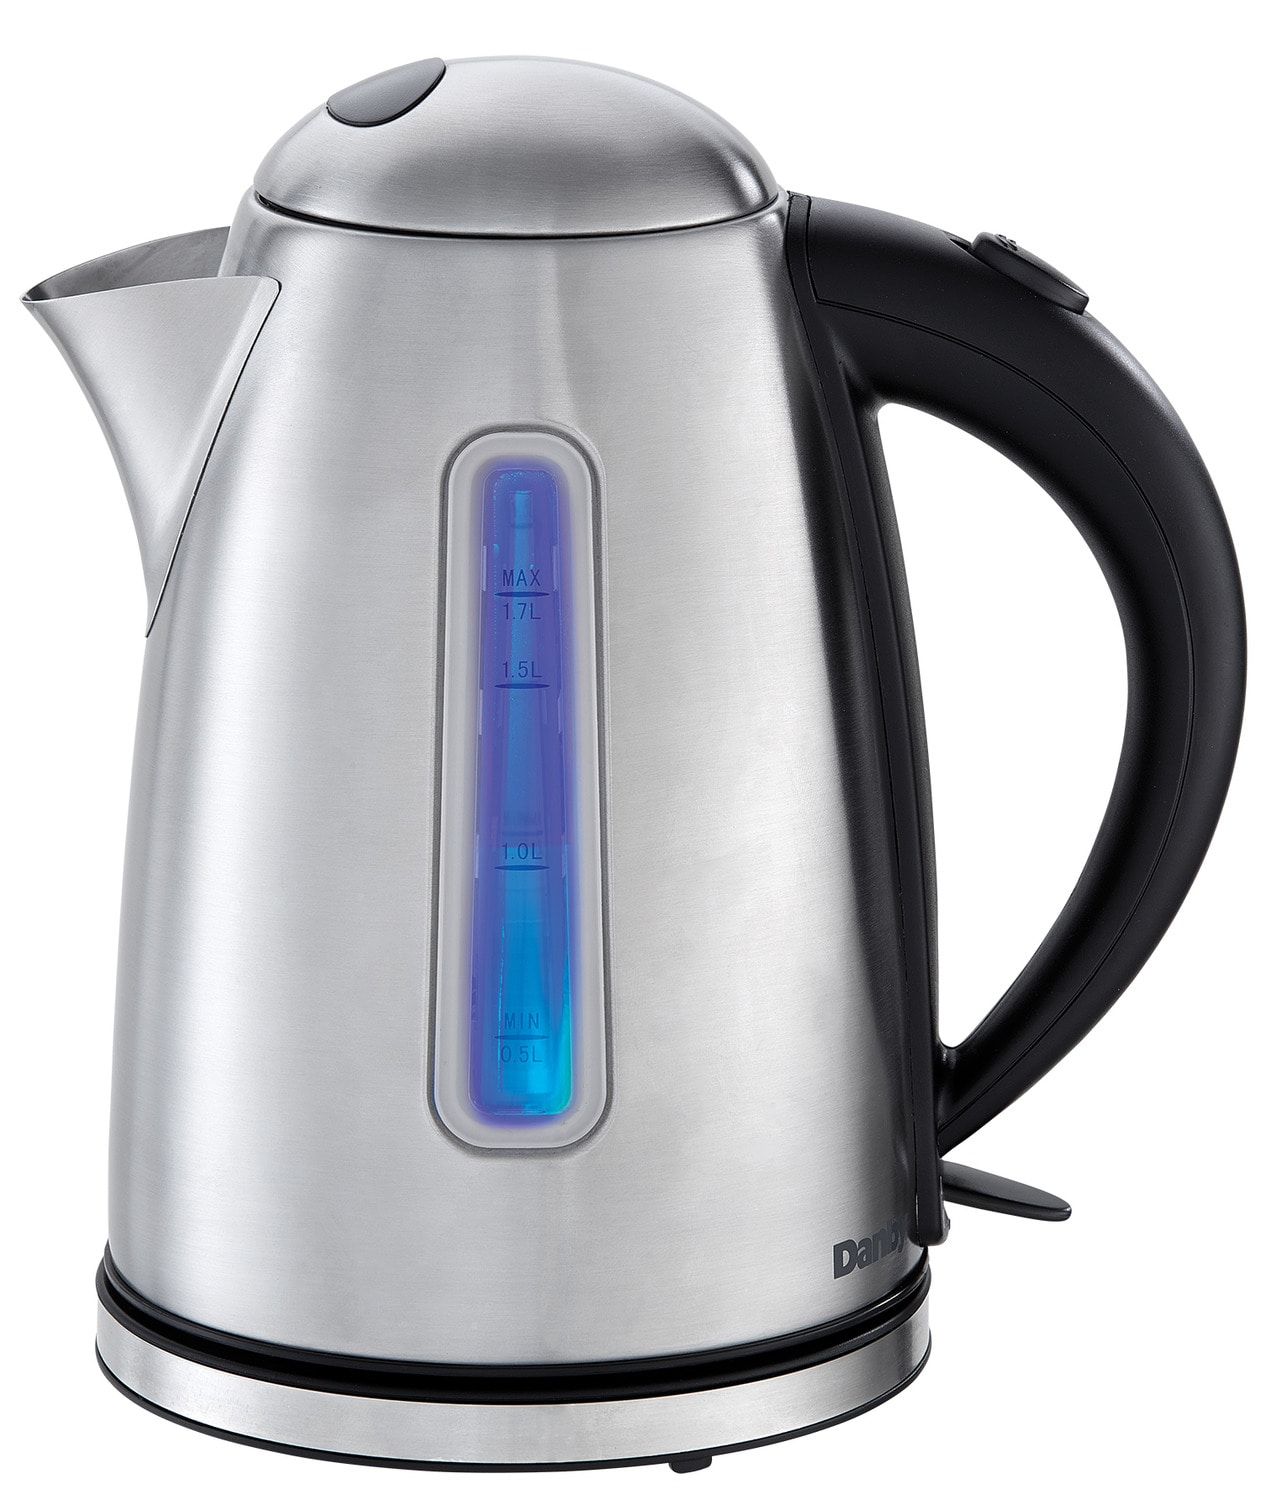 Cooking Products - Danby Stainless Steel Electric Kettle (1.7 L) - DKT17C2SSDB